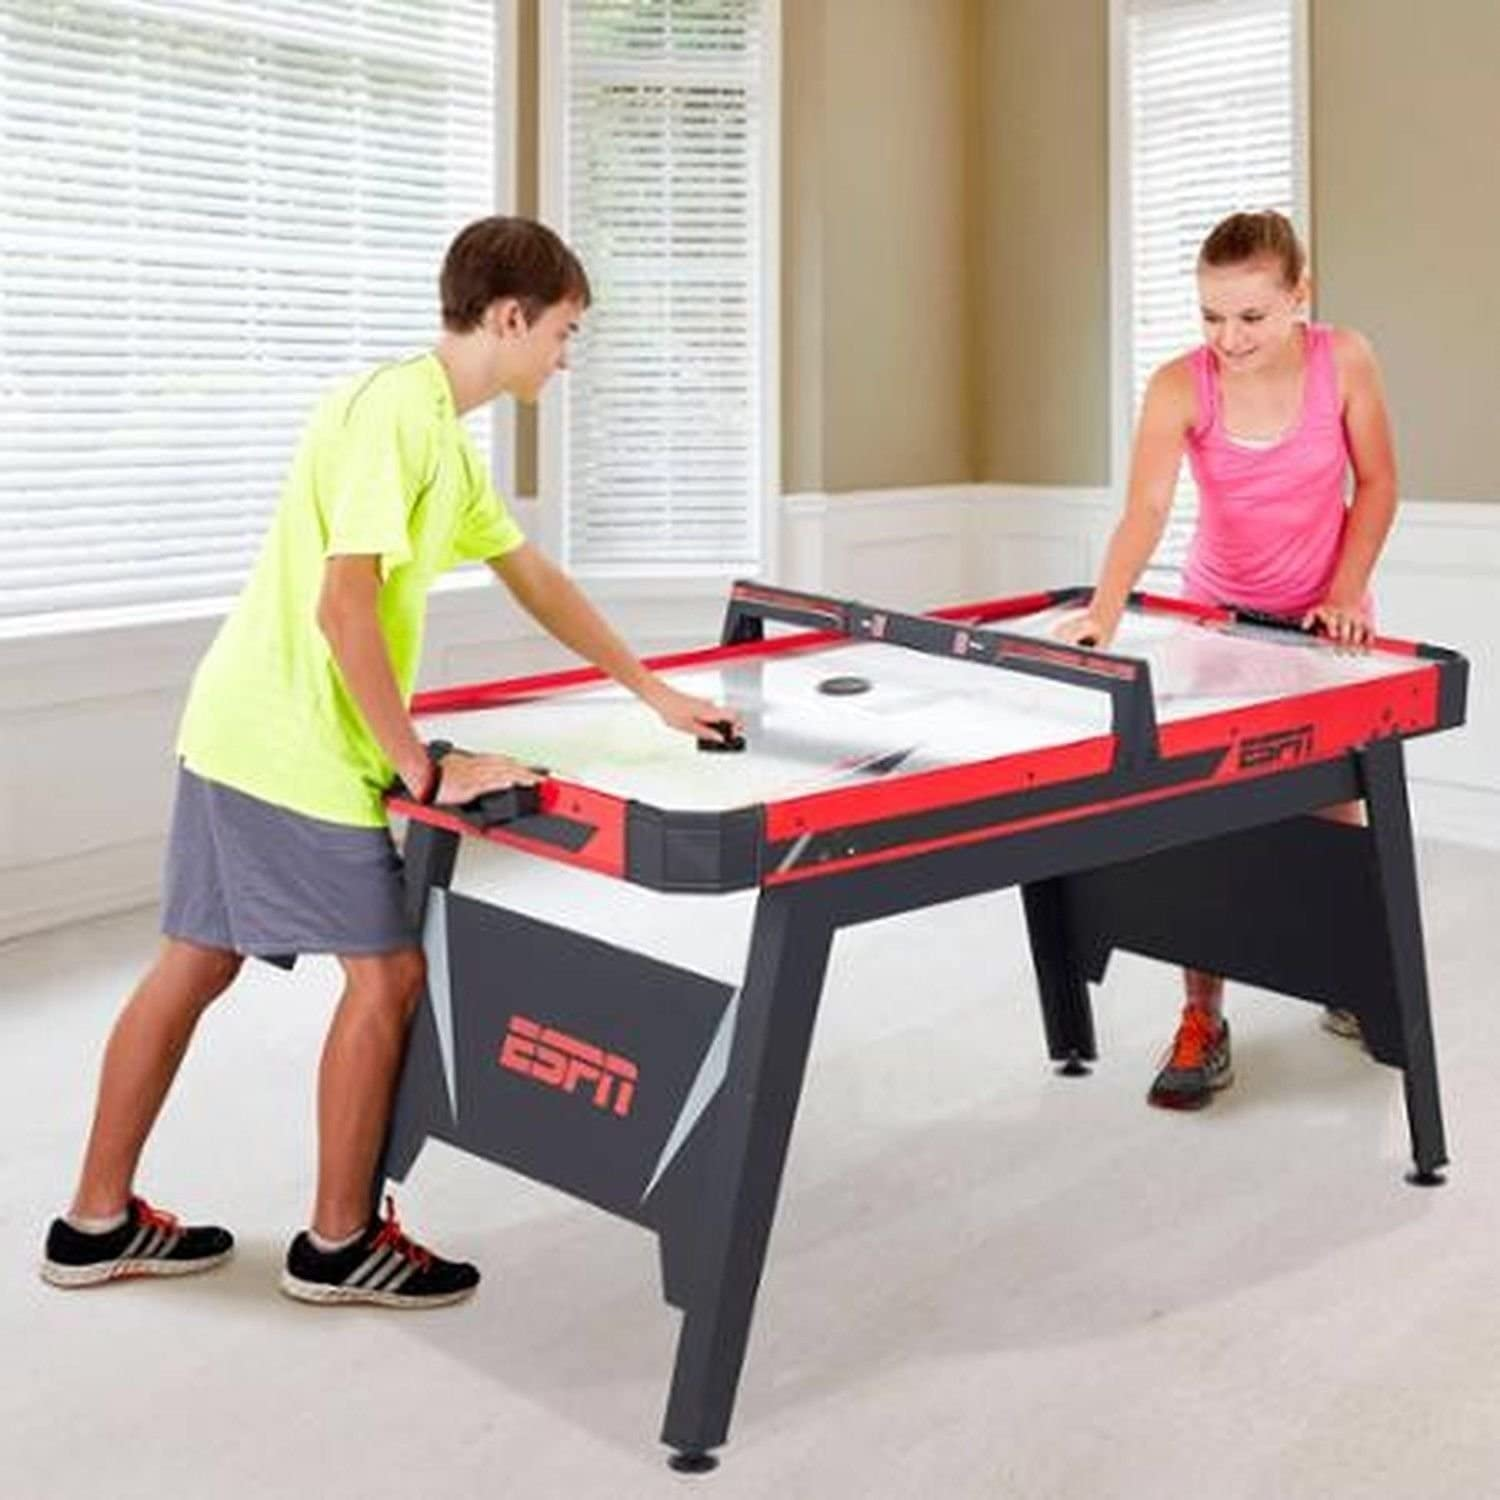 Amazon Com Supershop Espn 60 Air Powered Hockey Table 821735160032 Toys Games